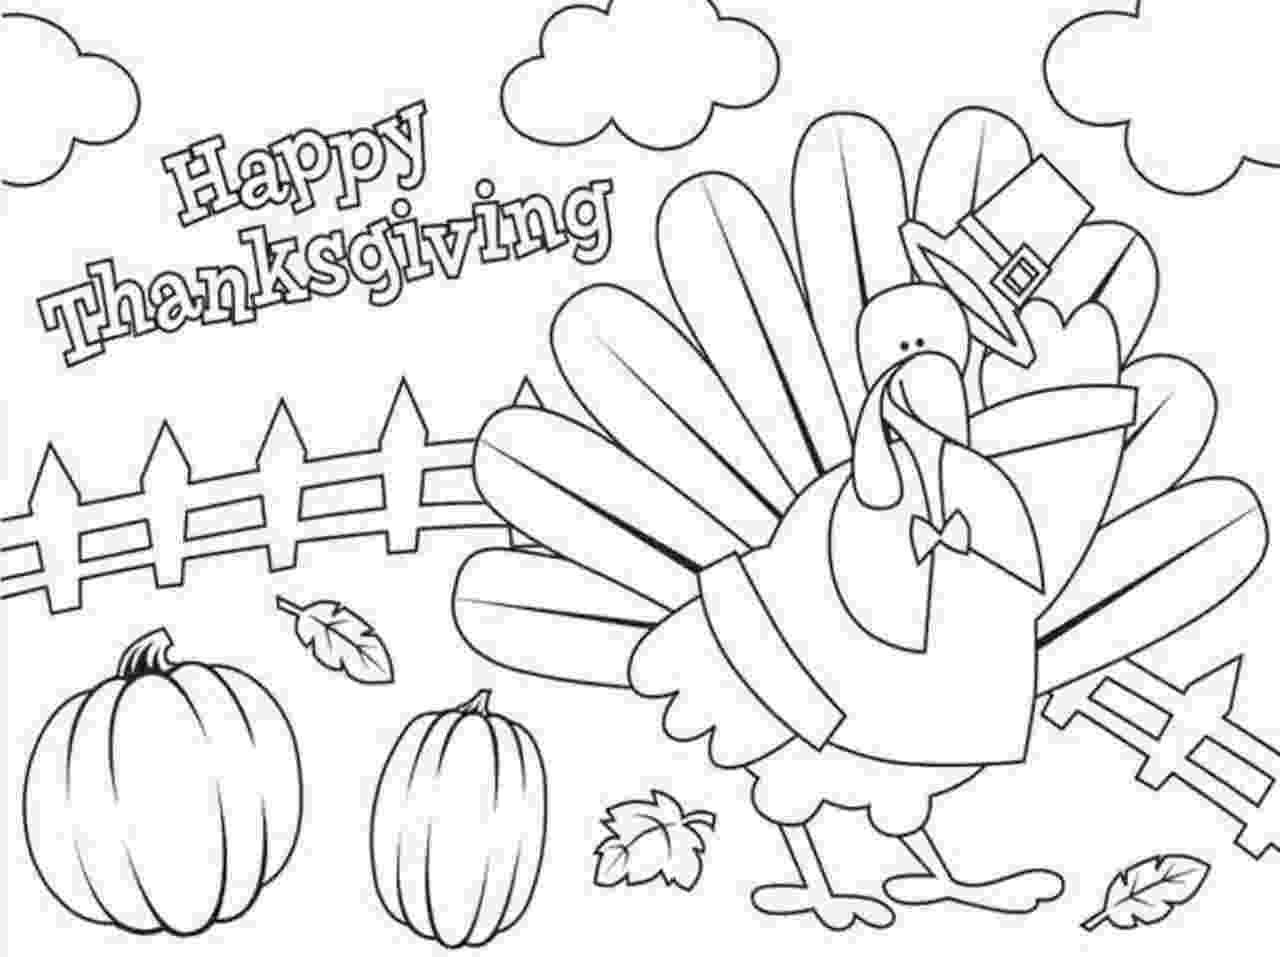 printable thanksgiving coloring book 16 free thanksgiving coloring pages for kids toddlers thanksgiving book printable coloring